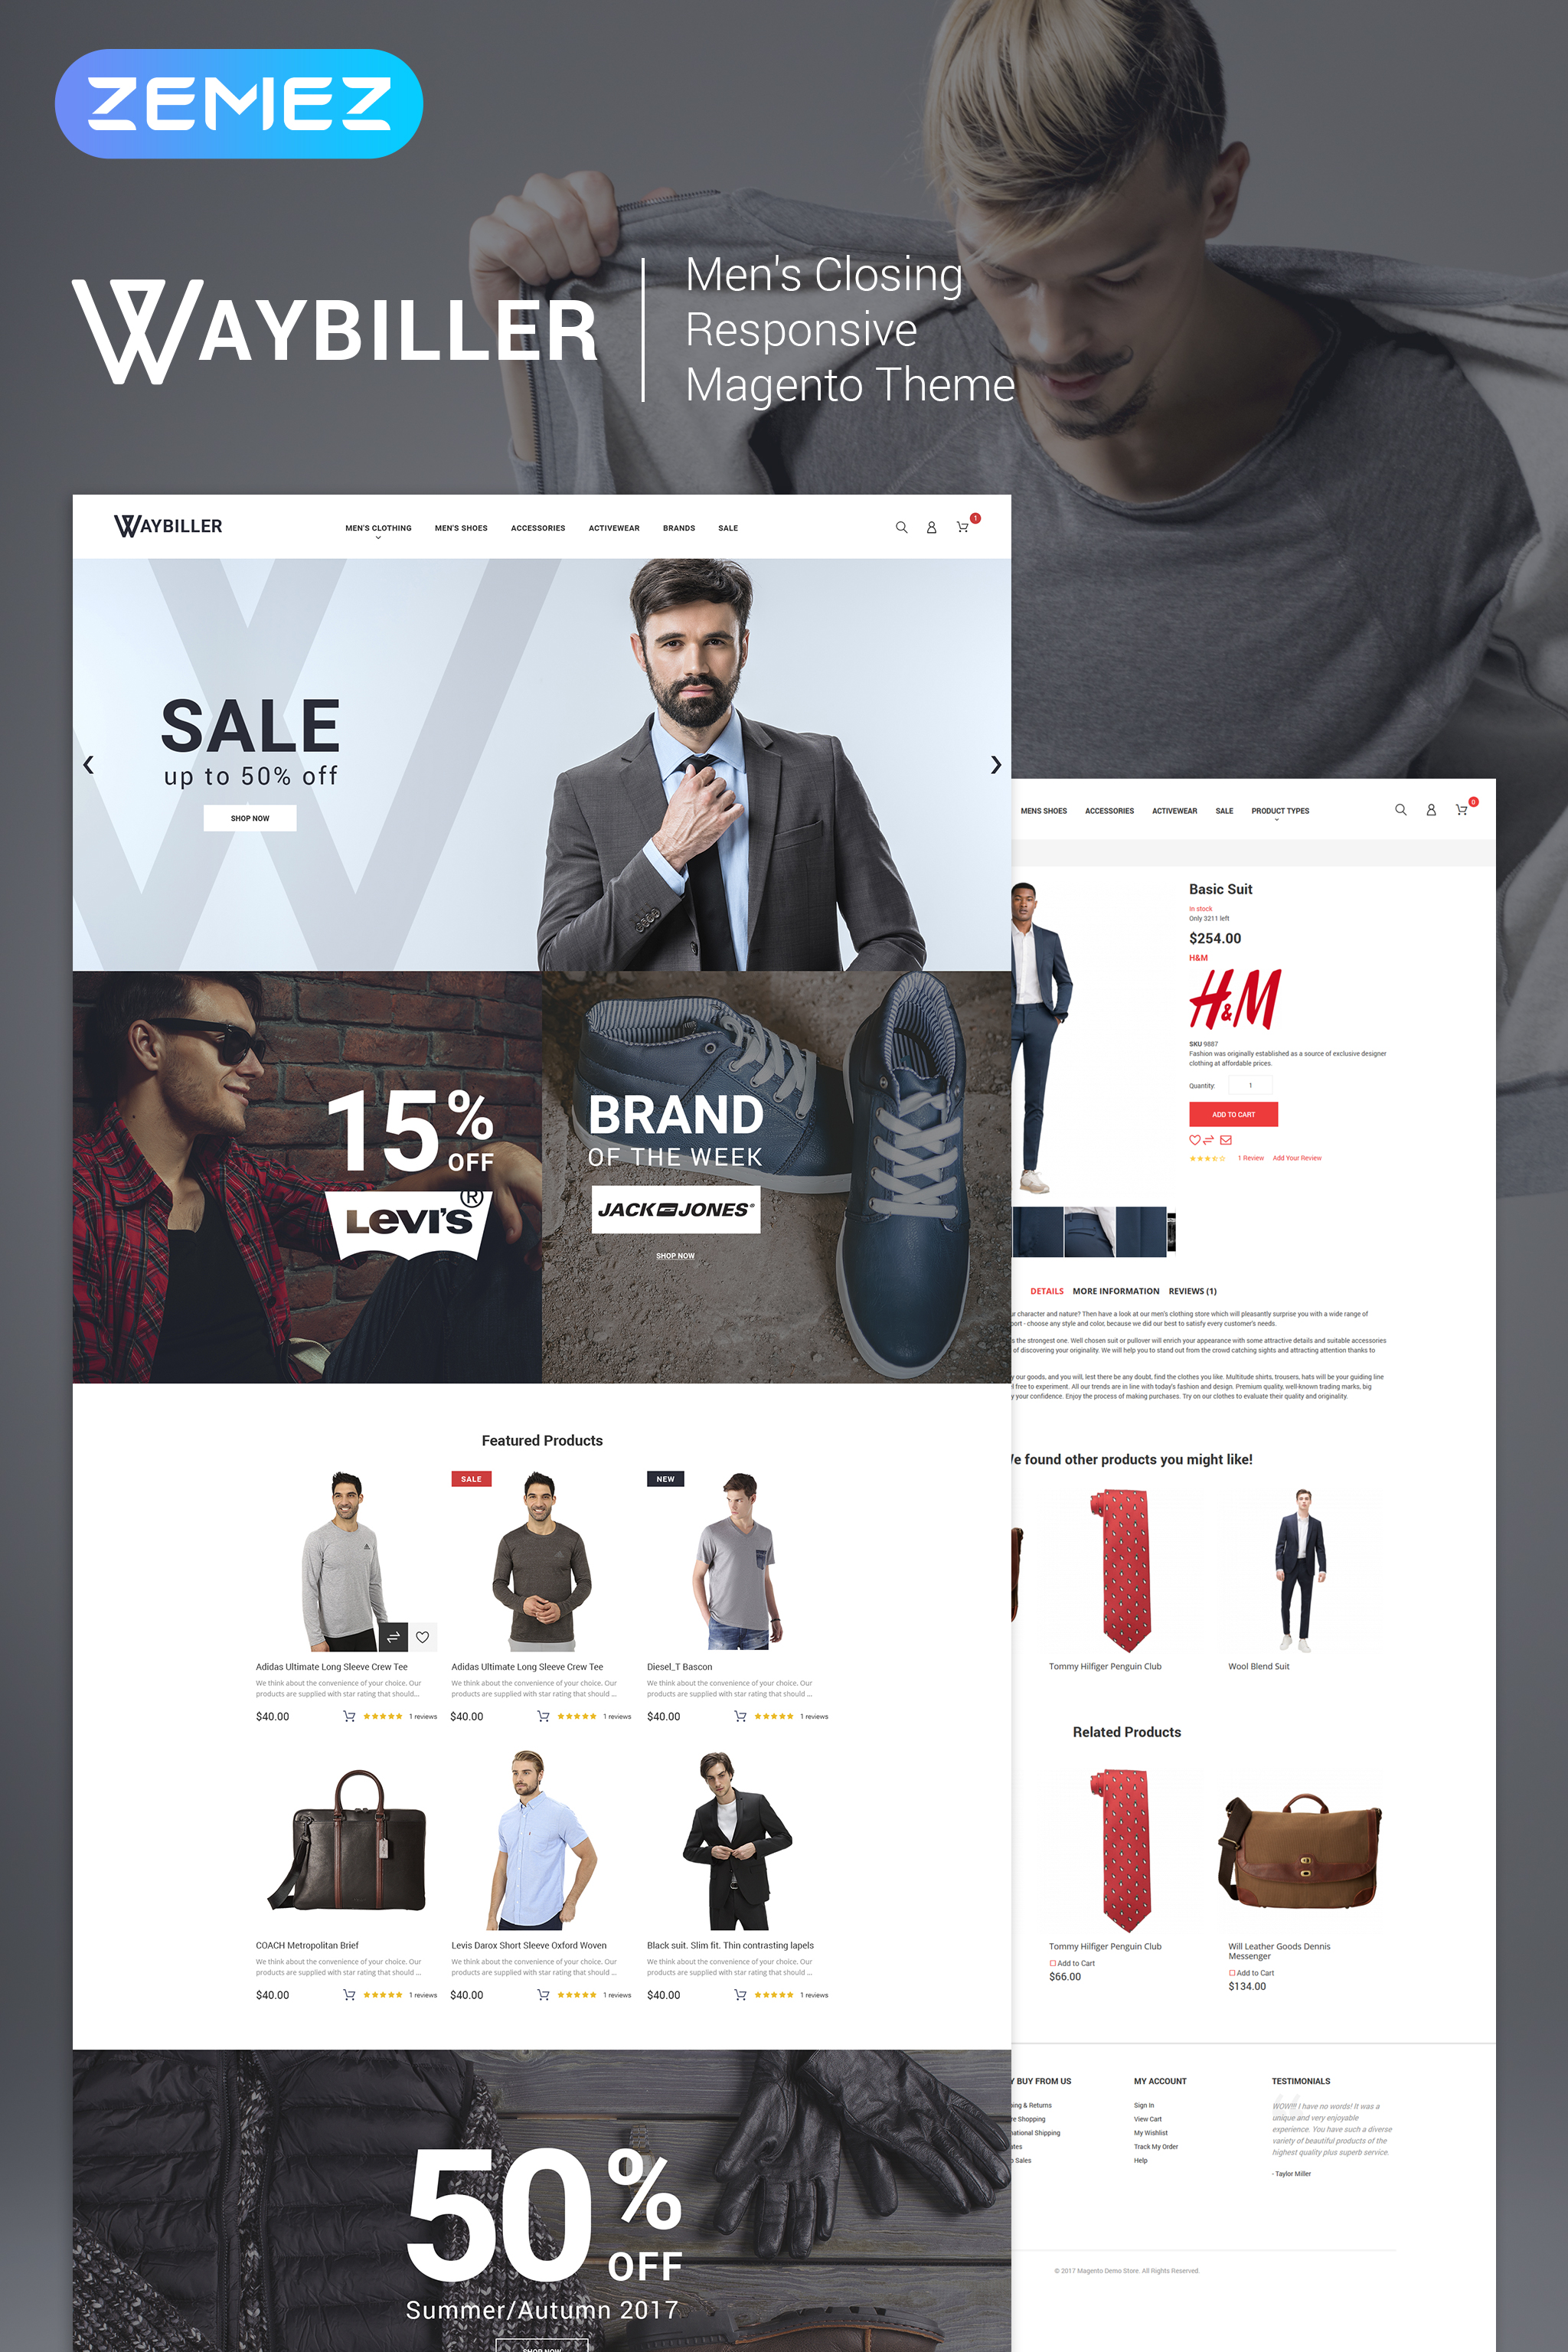 Waybiller - Men's Closing Magento Theme